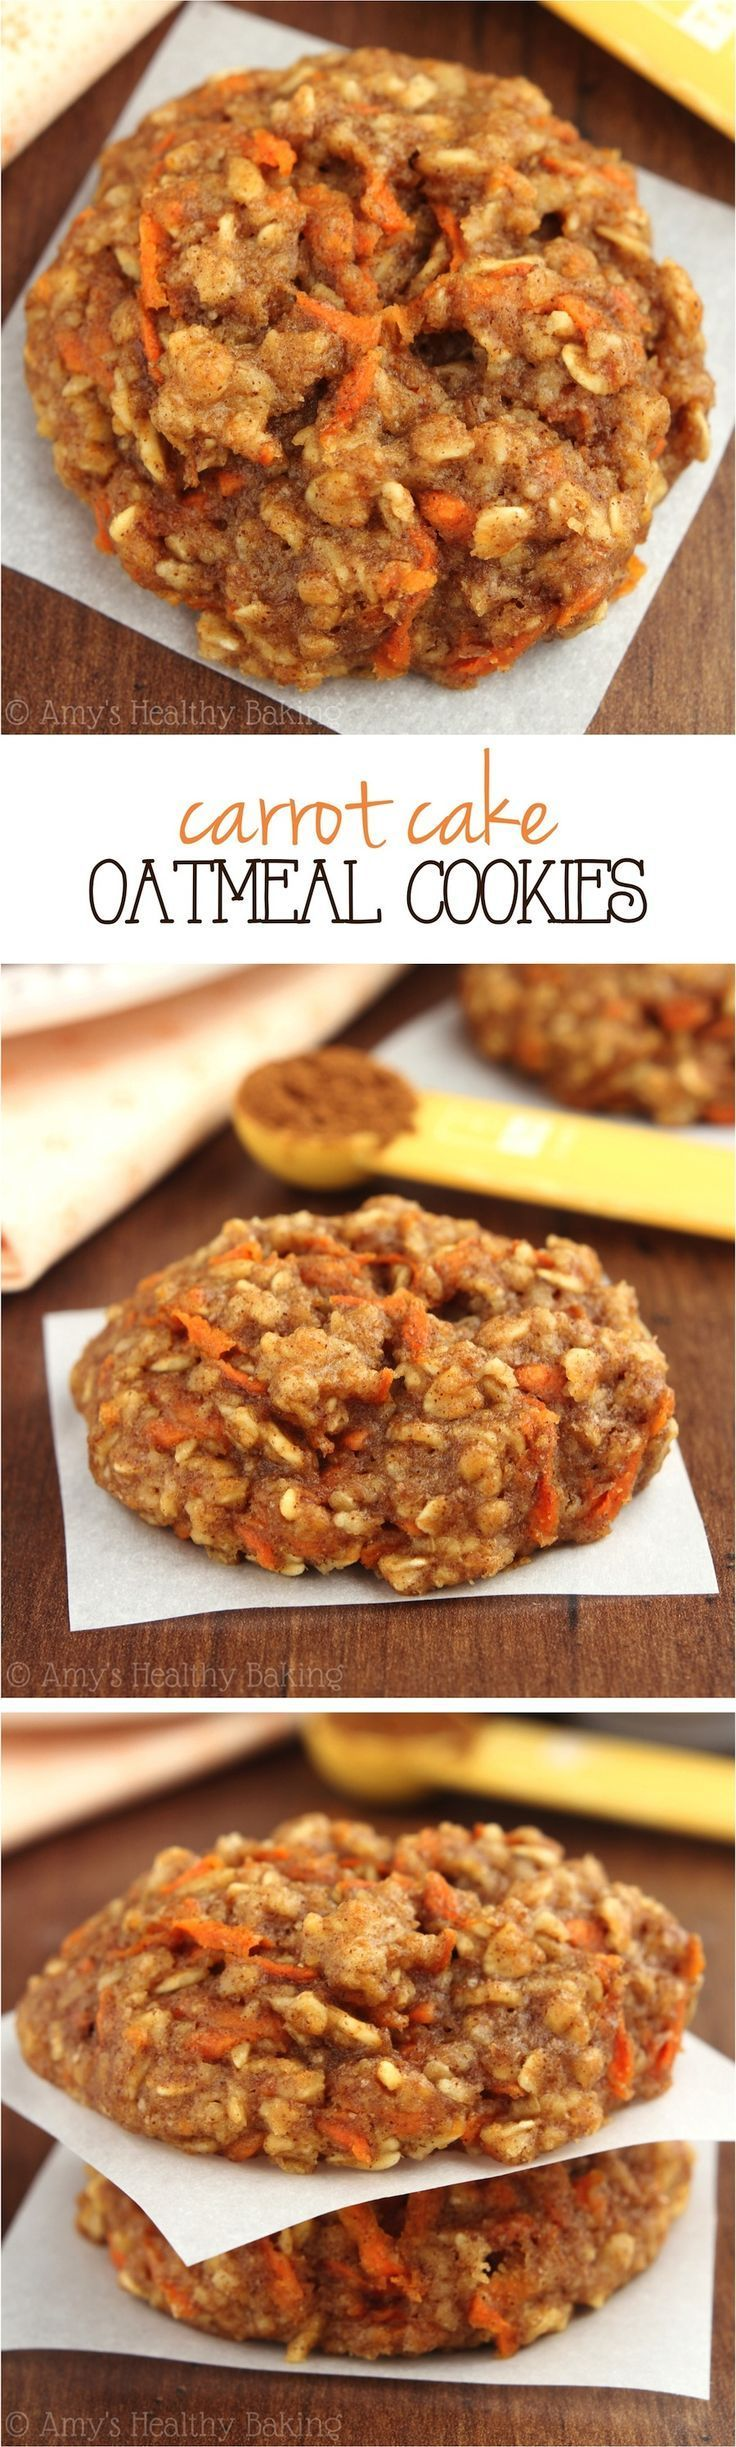 Carrot Cake Day just got that much better with these Carrot Cake Oatmeal Cookies! Up the protein on these tasty bites by substituting flour for protein powder